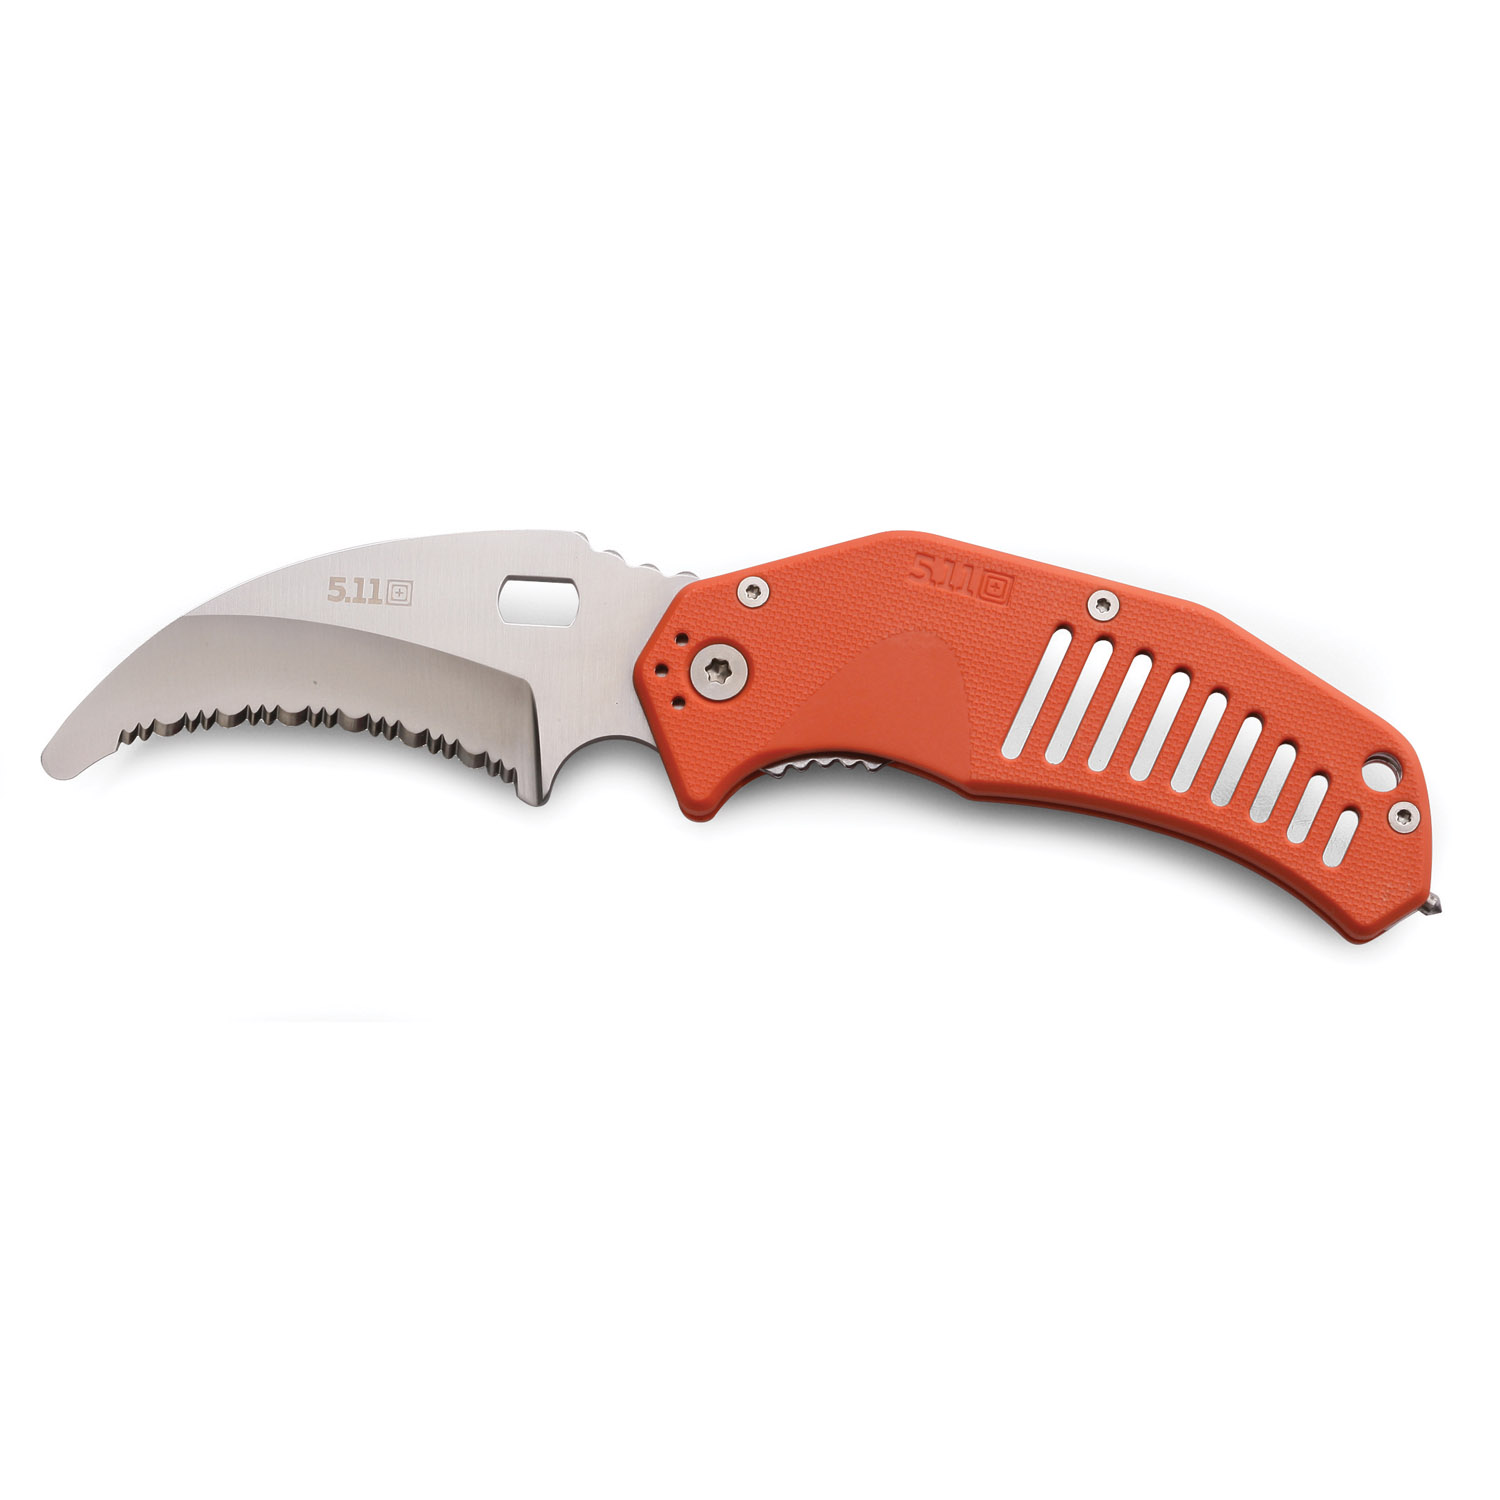 5.11 Tactical LMC Curved Blade Rescue Knife